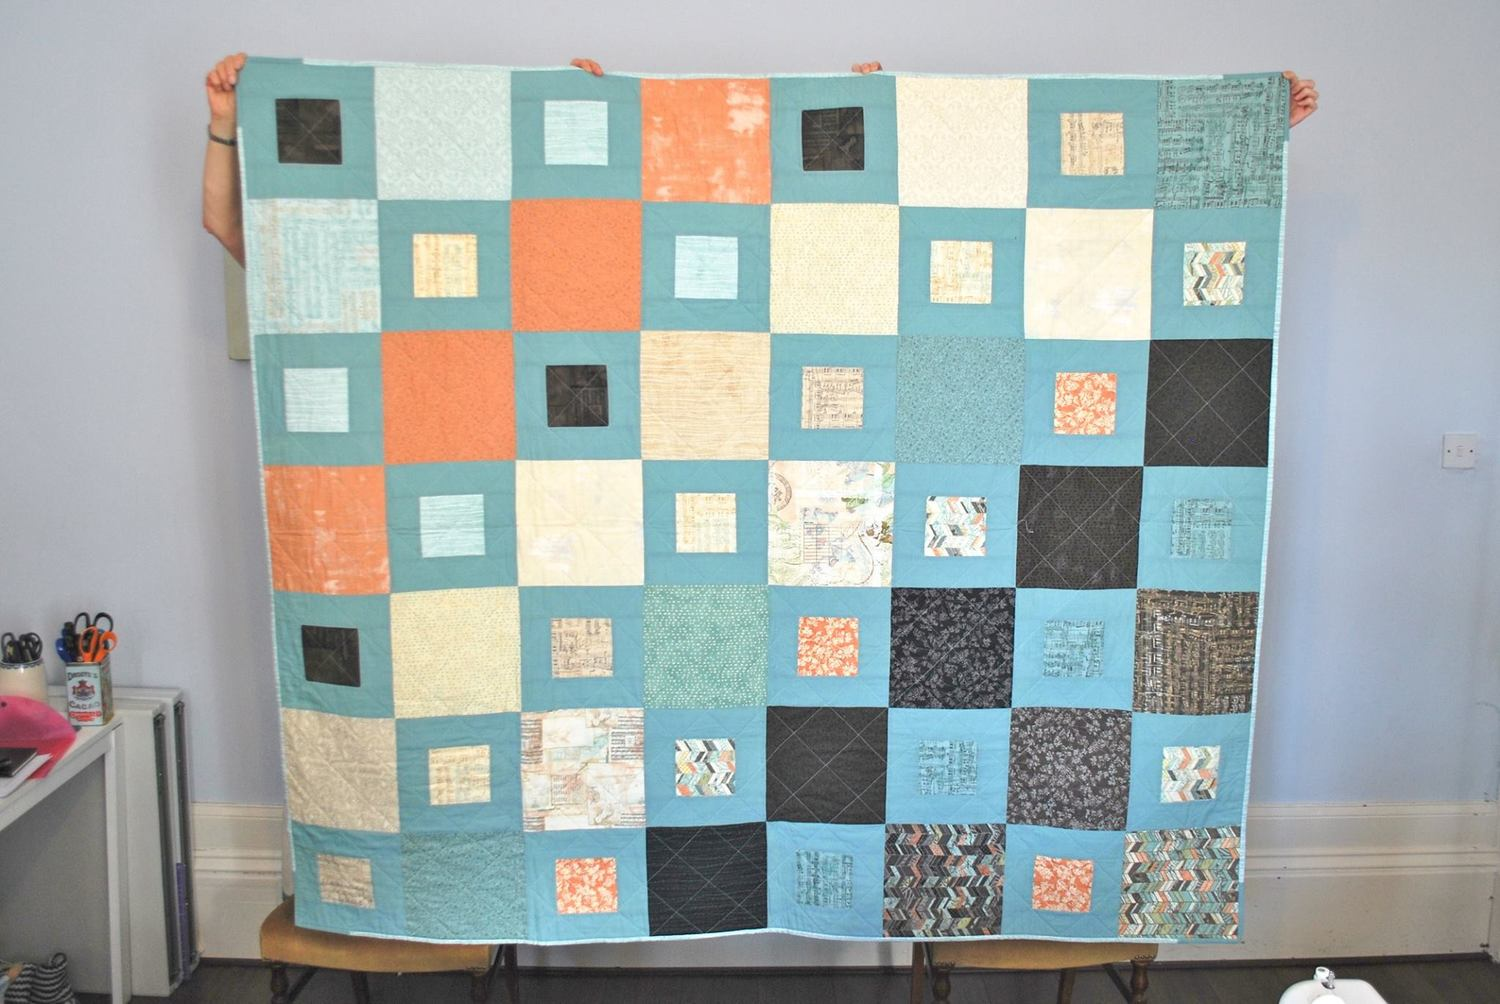 New Classes Coming Up At The Stitchery